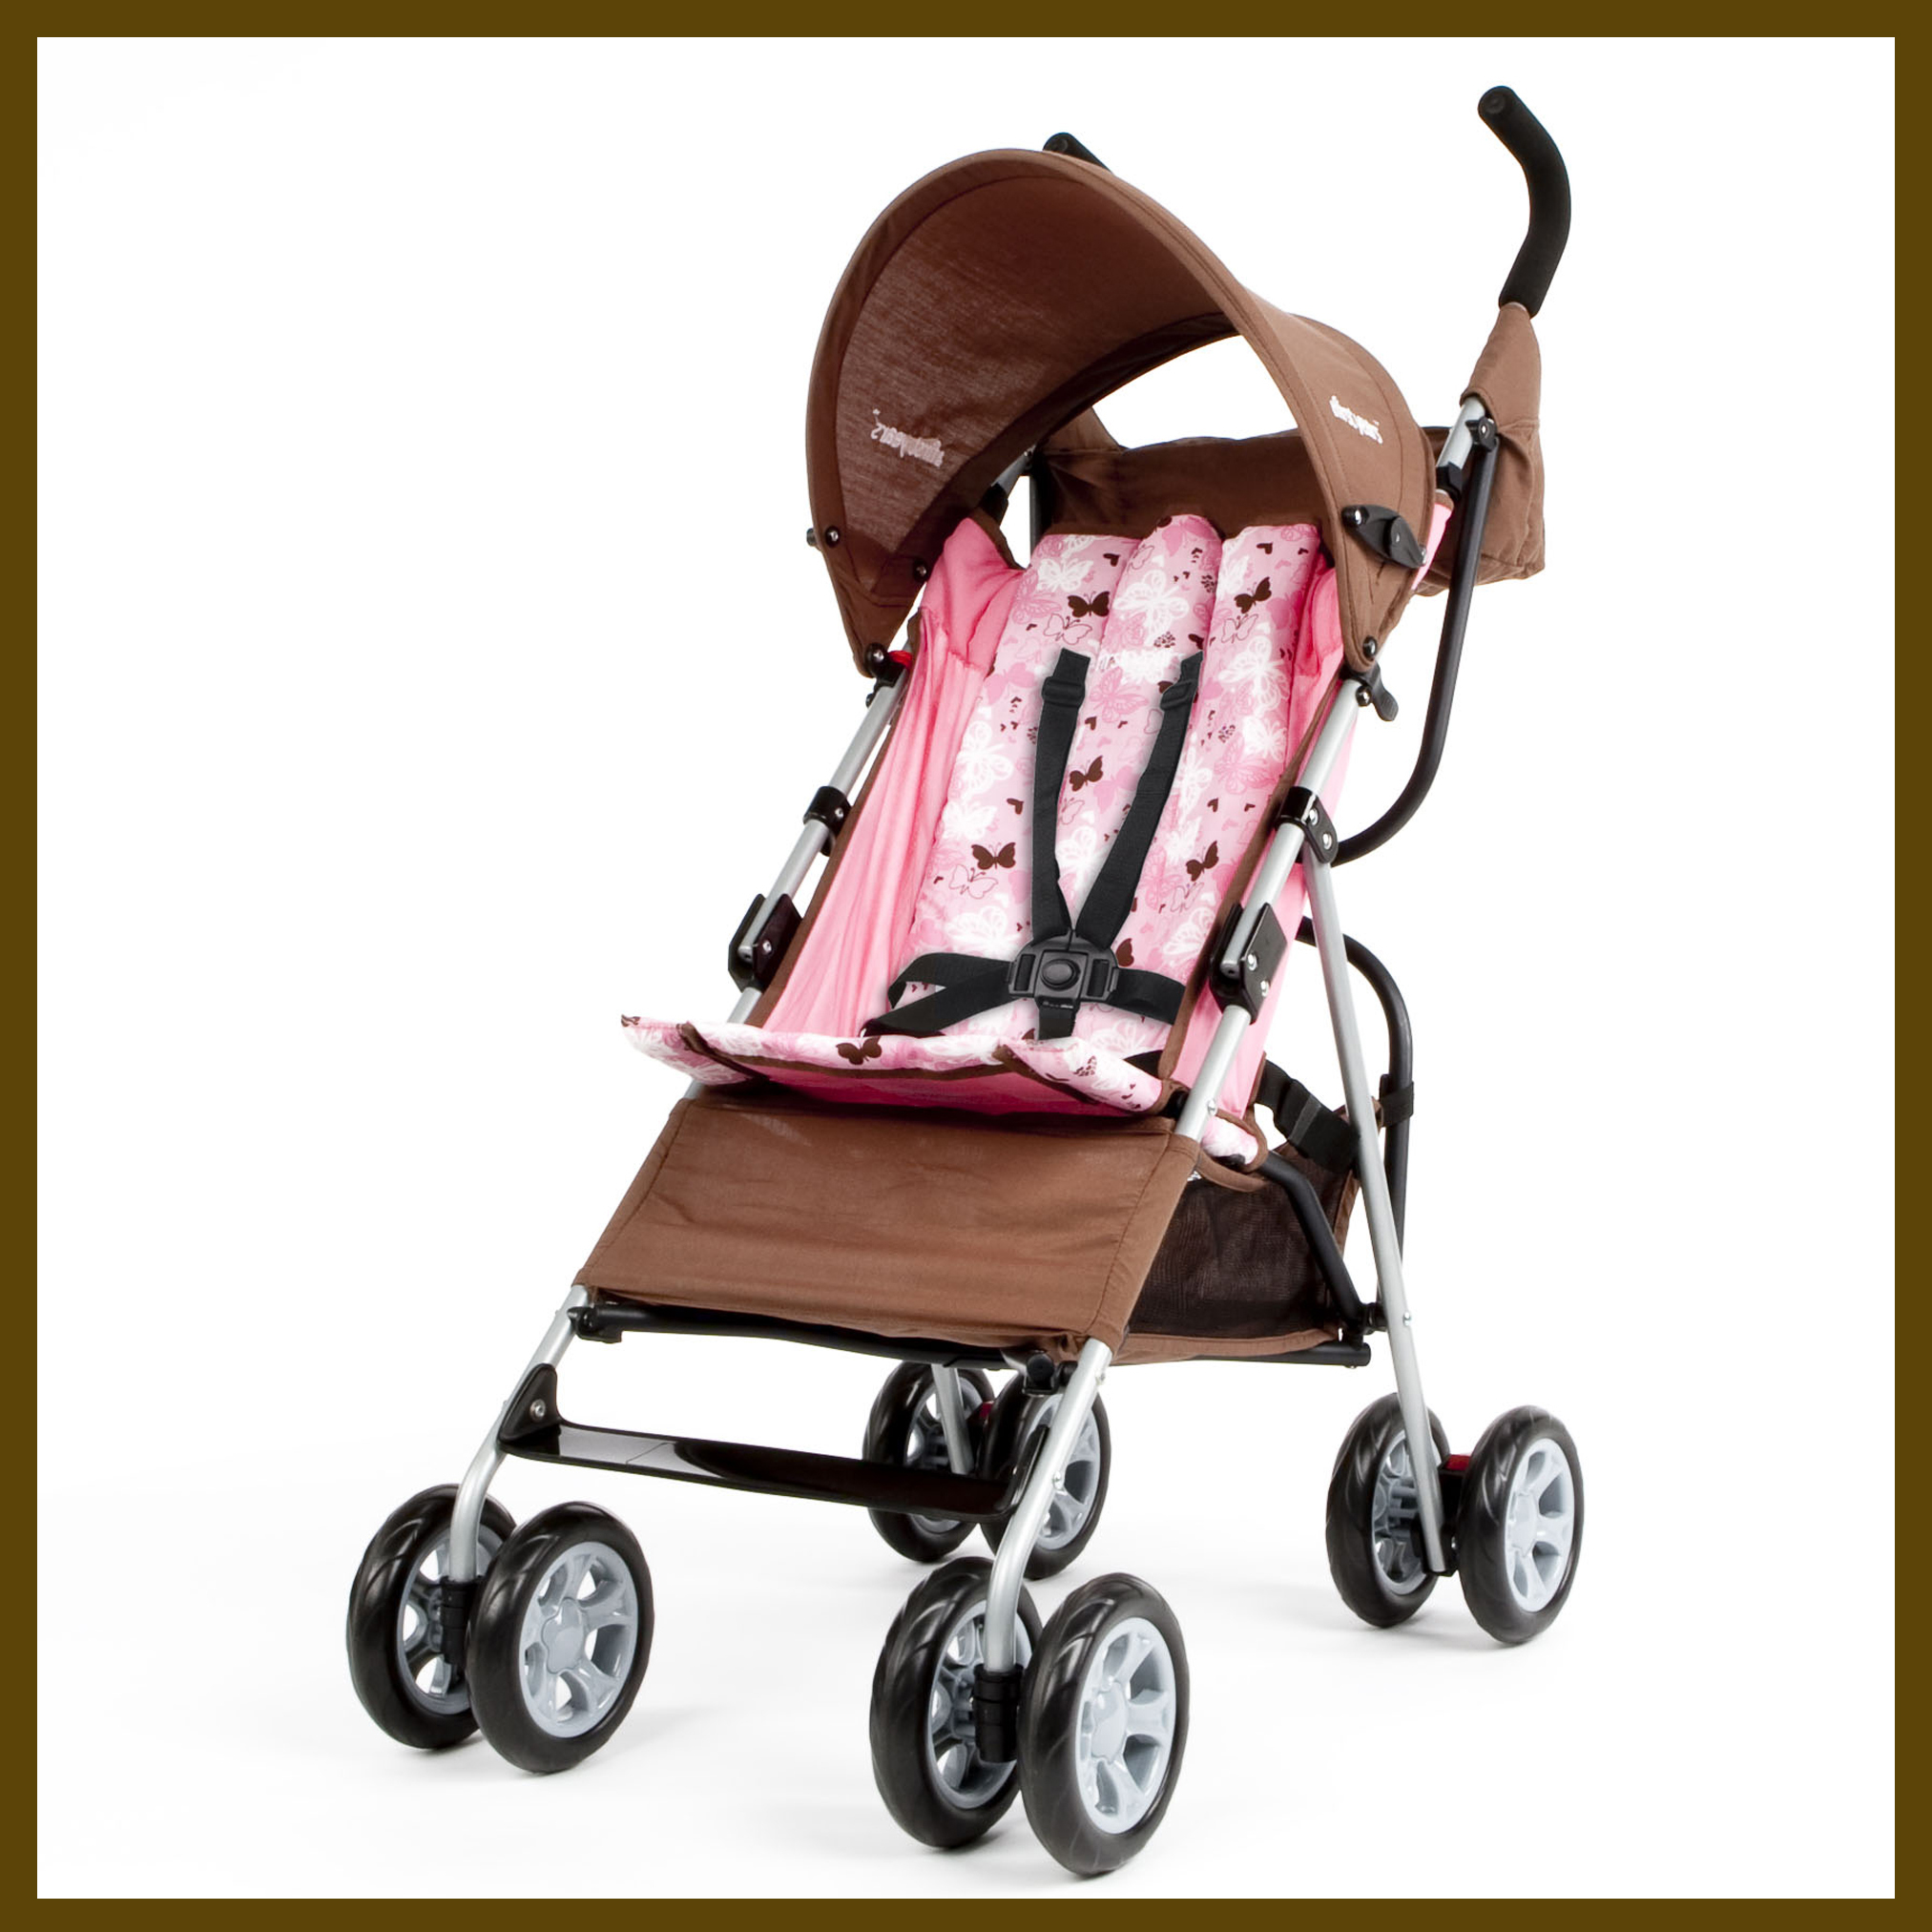 Umbrella Stroller First Years Jet Stroller Butterfly Pattern Growing Your Baby